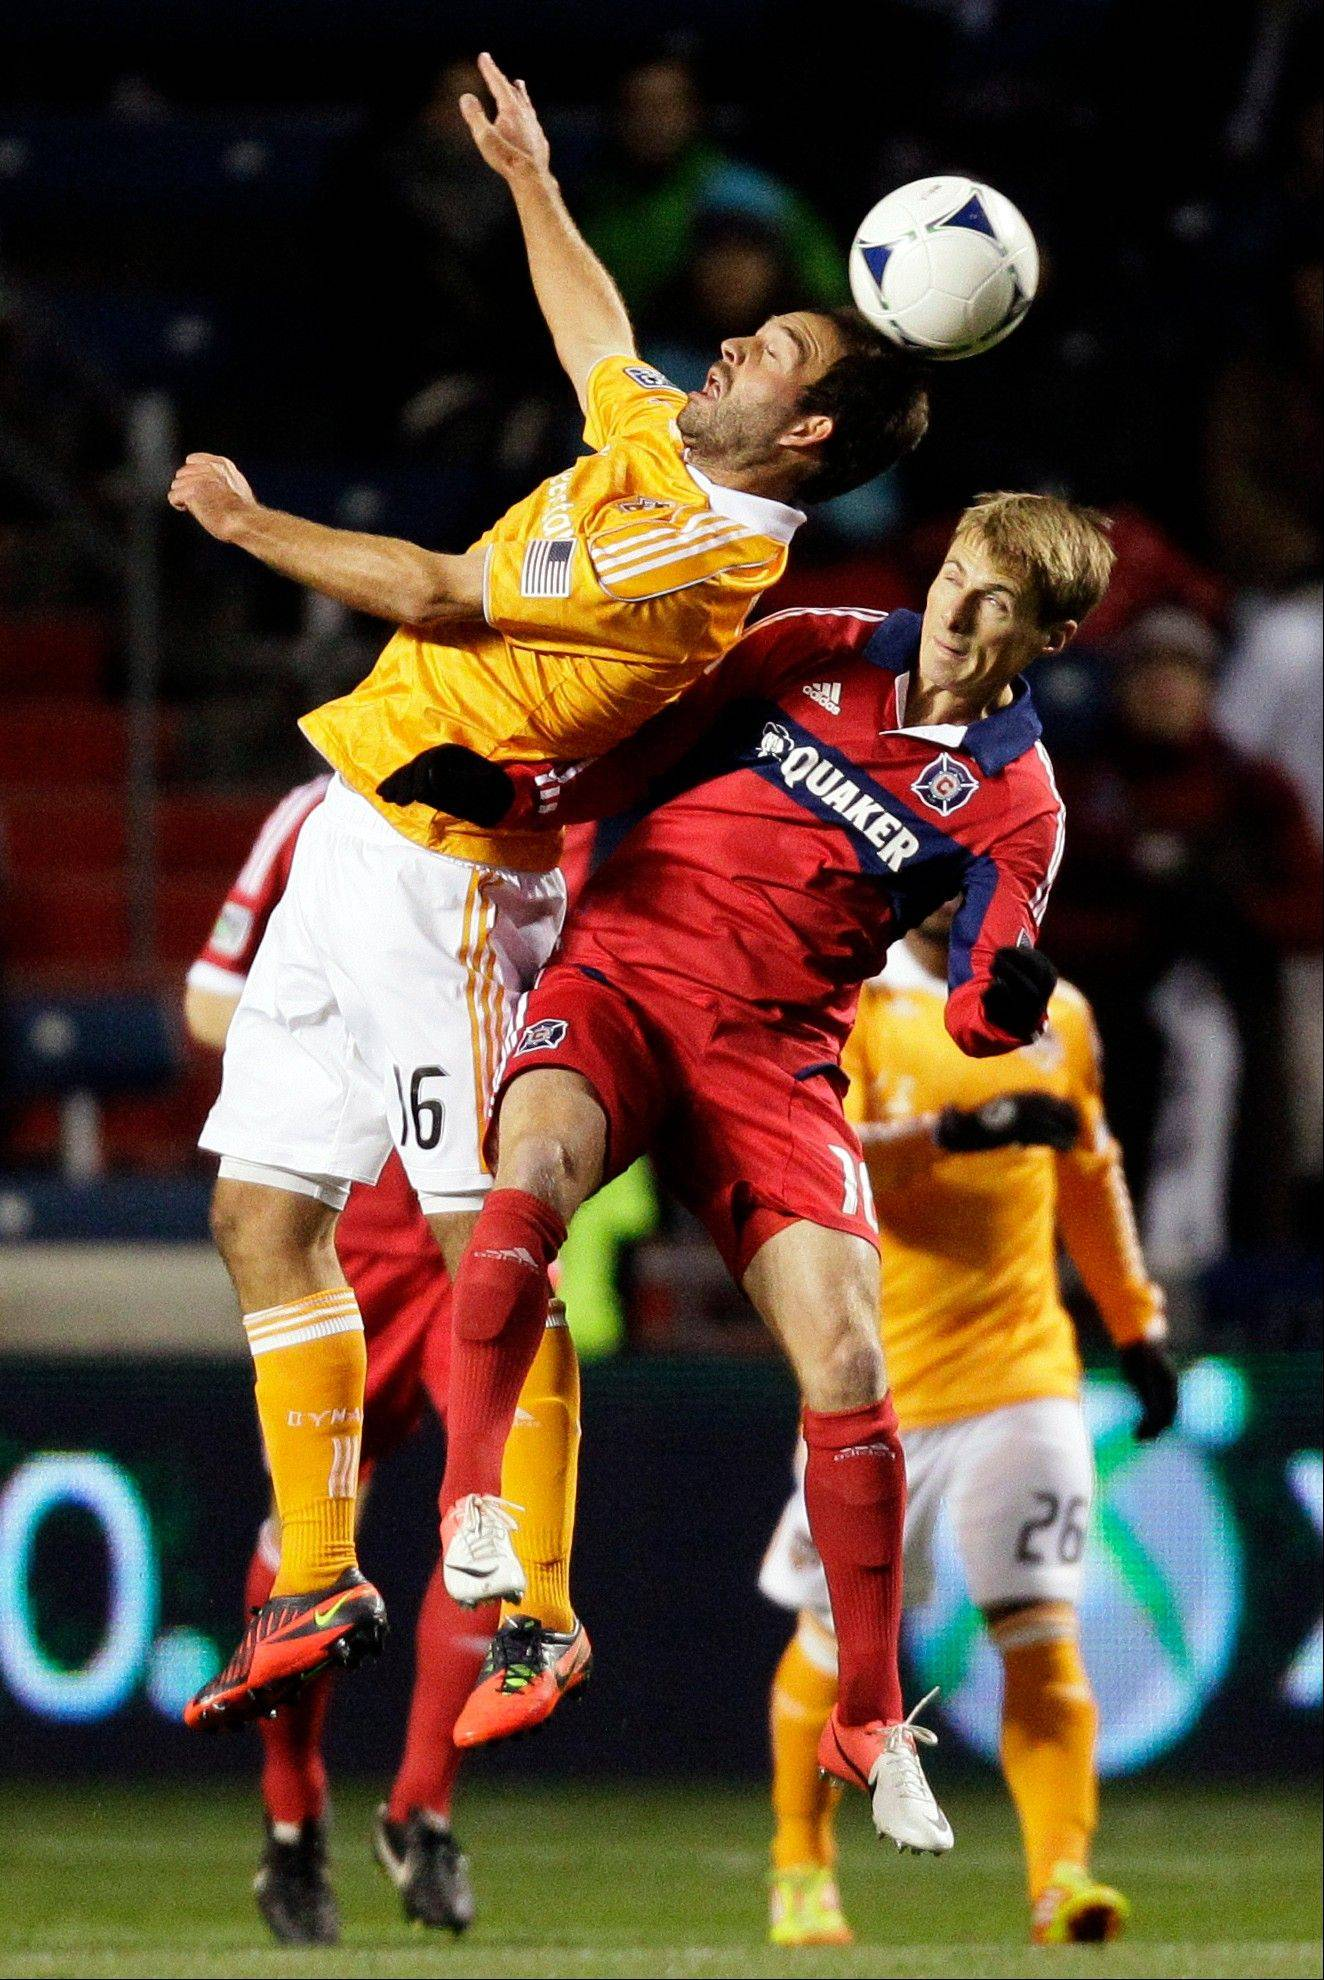 Houston Dynamo midfielder Adam Moffat (16) and Fire forward Chris Rolfe (18) battle for the ball.